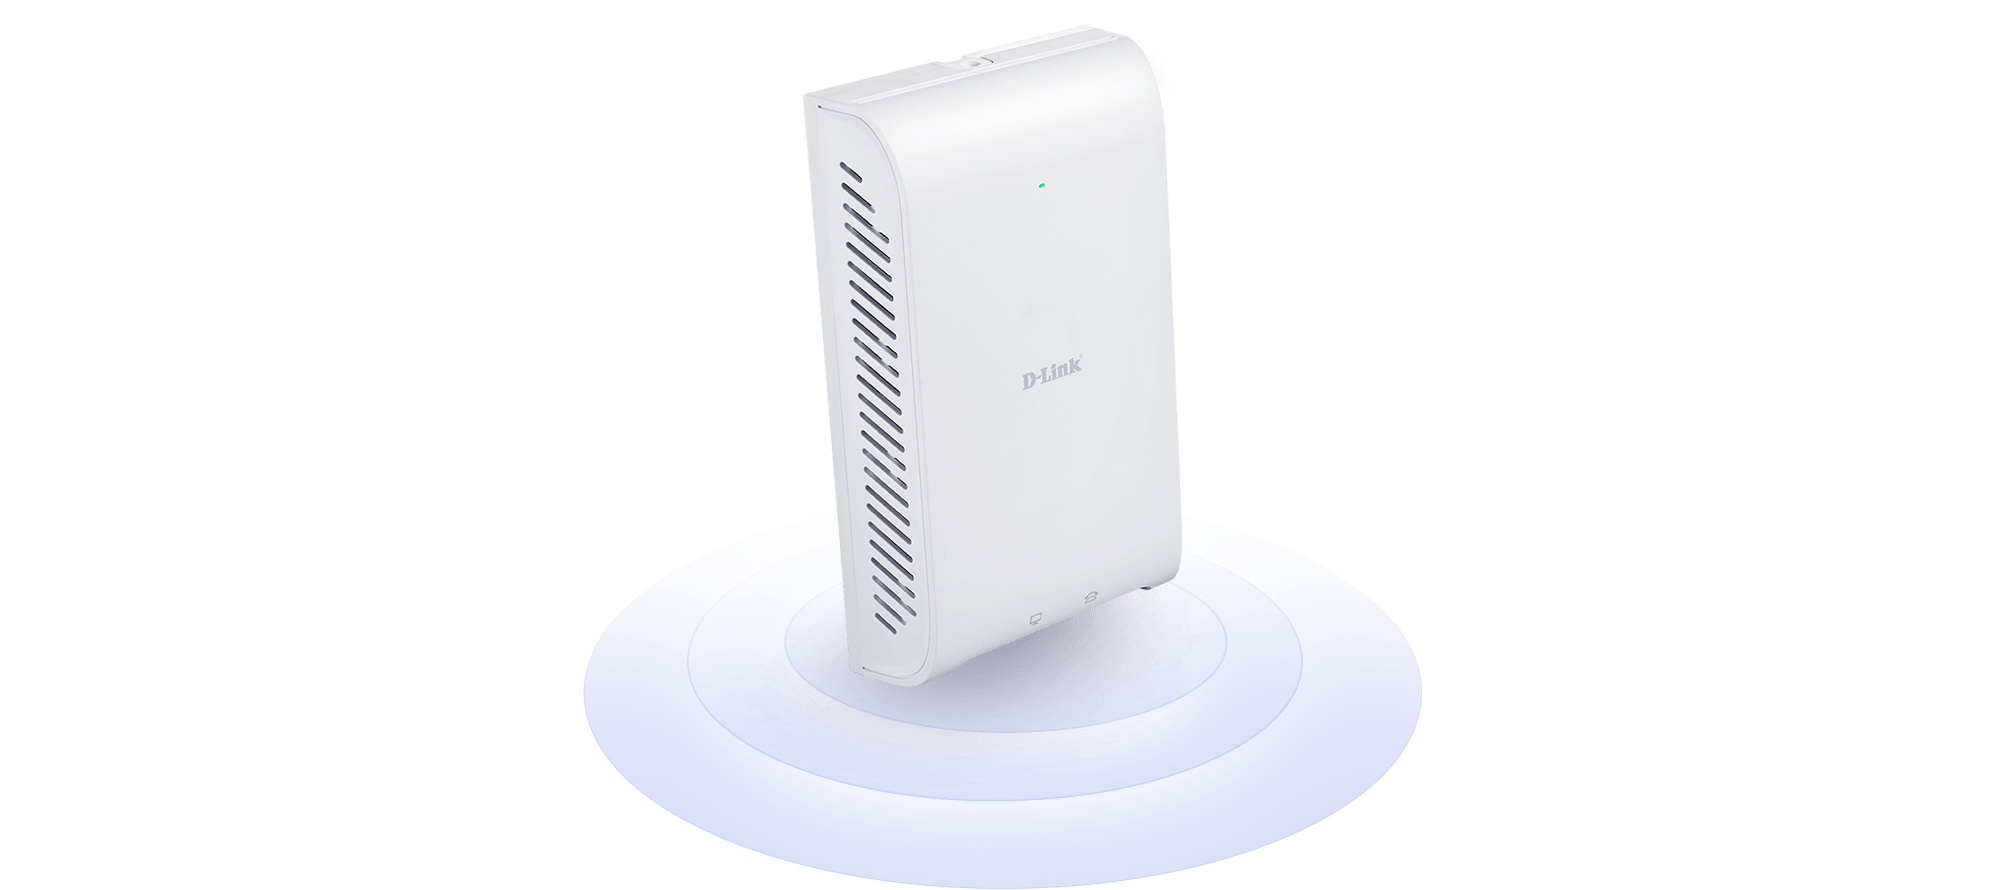 DAP-2620 Wireless AC1200 Wave 2 In-Wall PoE Access Point with waves emanating from it